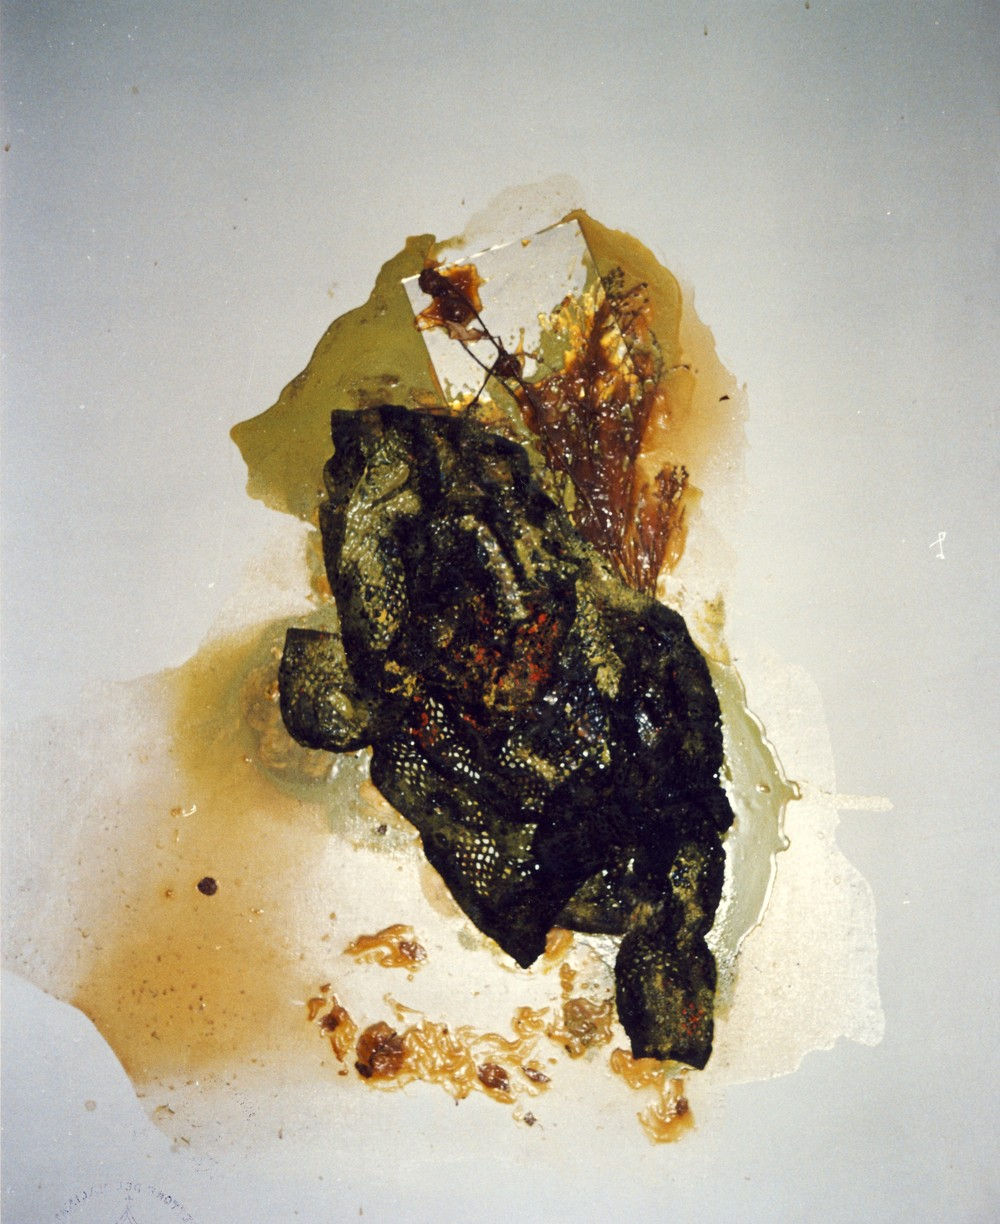 senza titolo, 1970, polimaterico su tela, cm 160 x 140  untitled, 1970, mixed media on canvas, cm 160 x 140